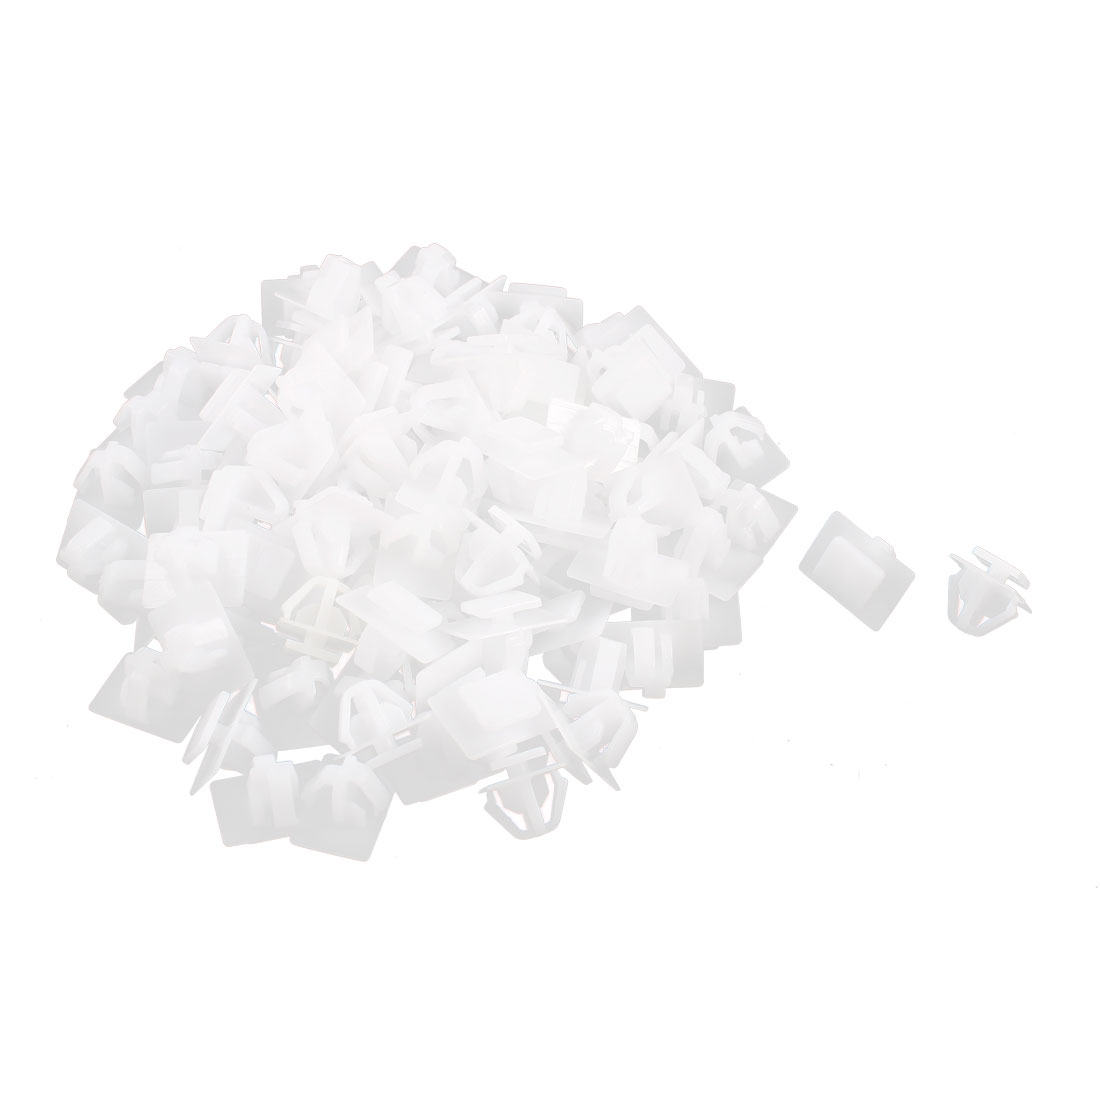 100 Pcs White Plastic Rivet Trim Fastener Retainer Clips for 14mm Hole